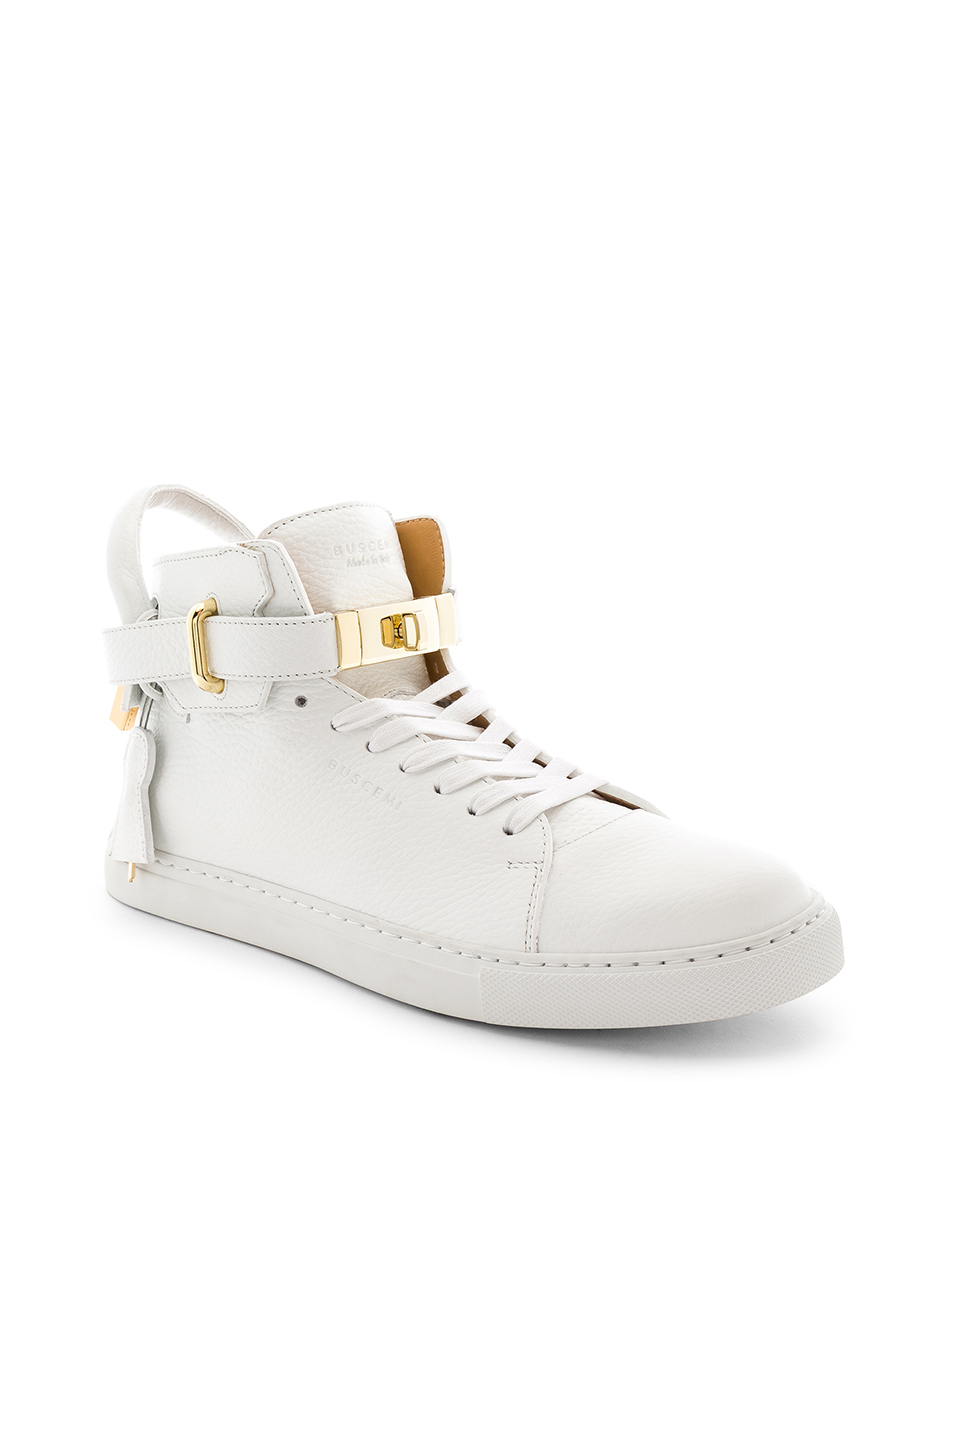 Buscemi 100MM High Top Pebbled Leather Sneakers in White